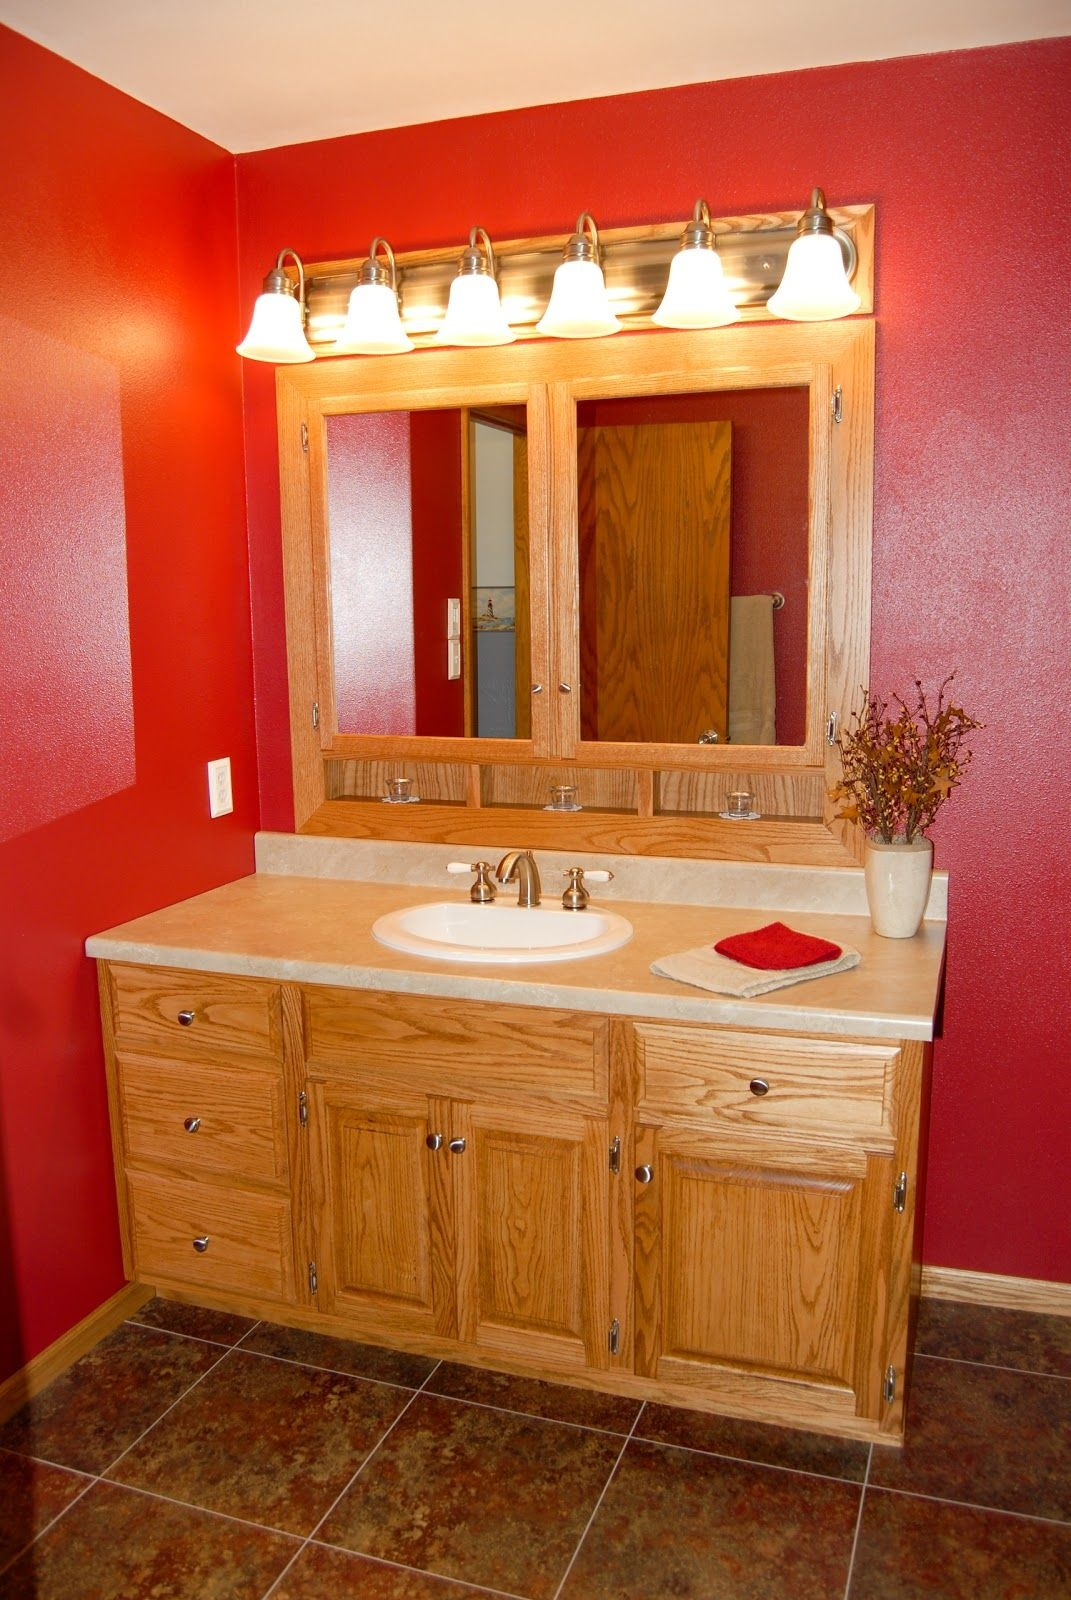 50 Great Oak Bathroom Vanities And Cabinets  Decor  Design Ideas In Hd Images  Fromthearmchair